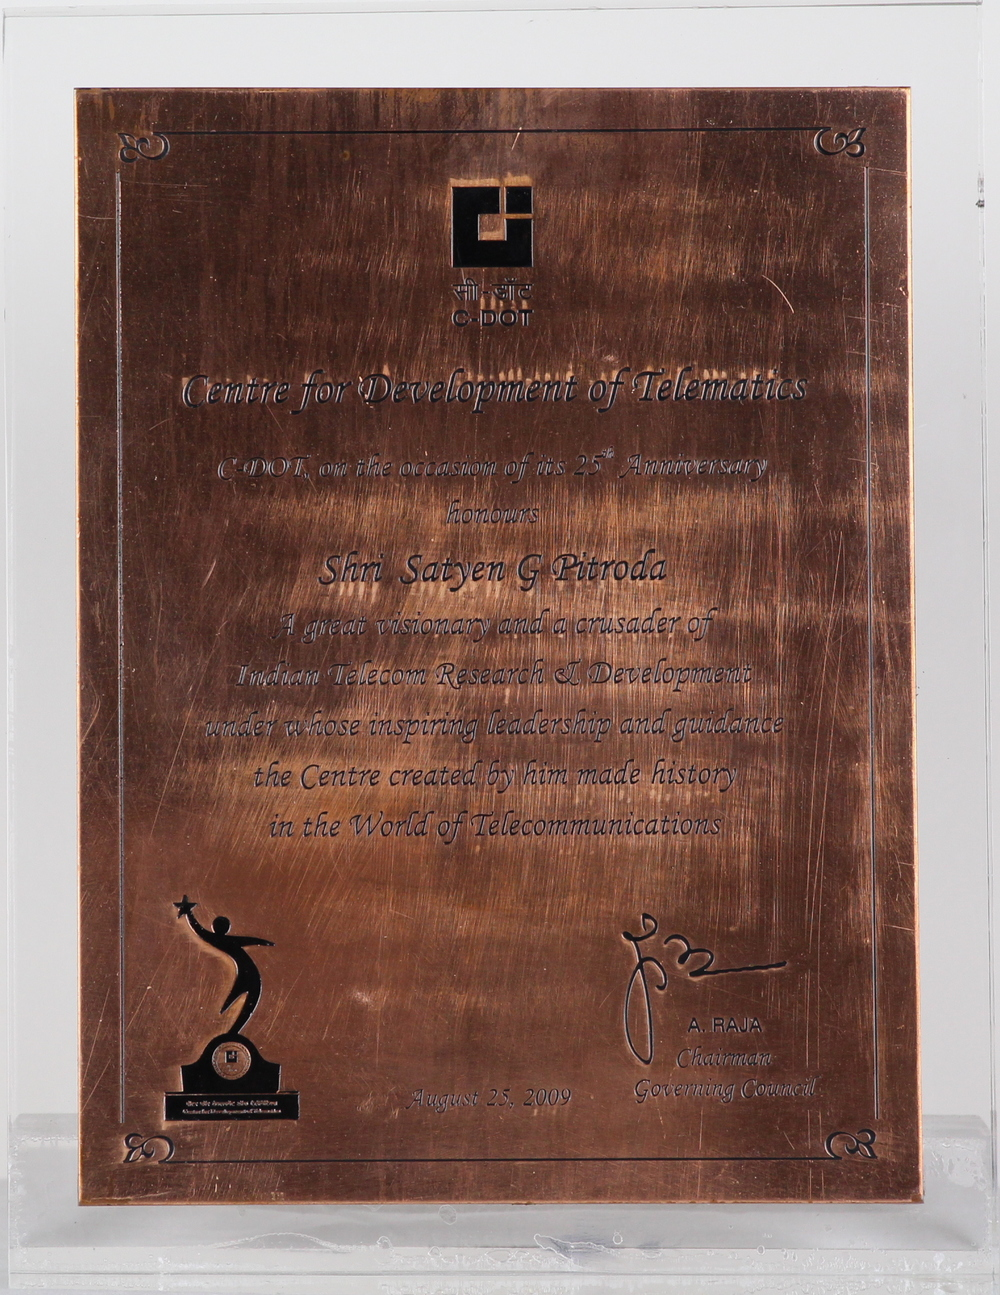 25th Anniversary Award, C-DOT, 2009